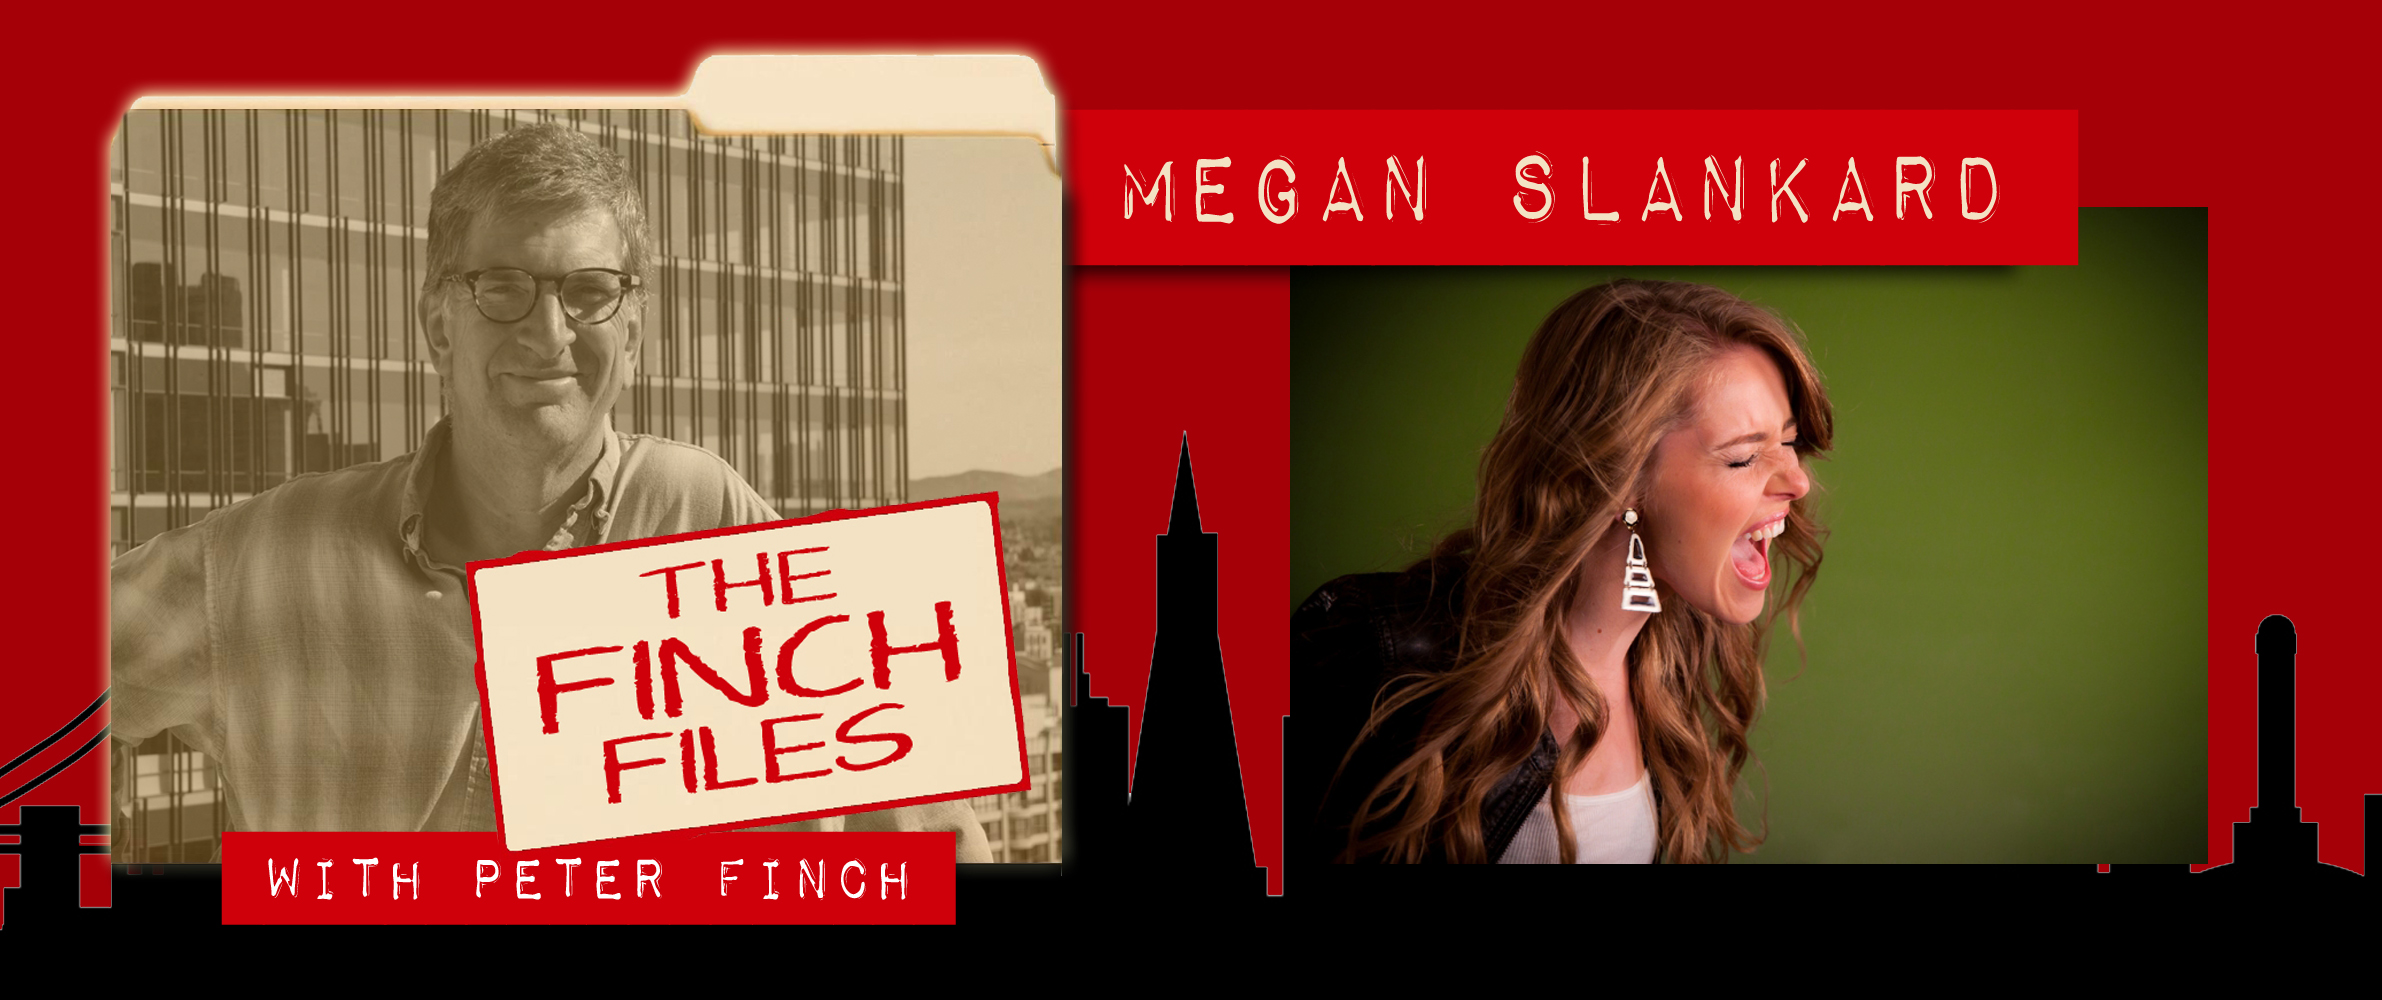 The Finch Files: Megan Slankard